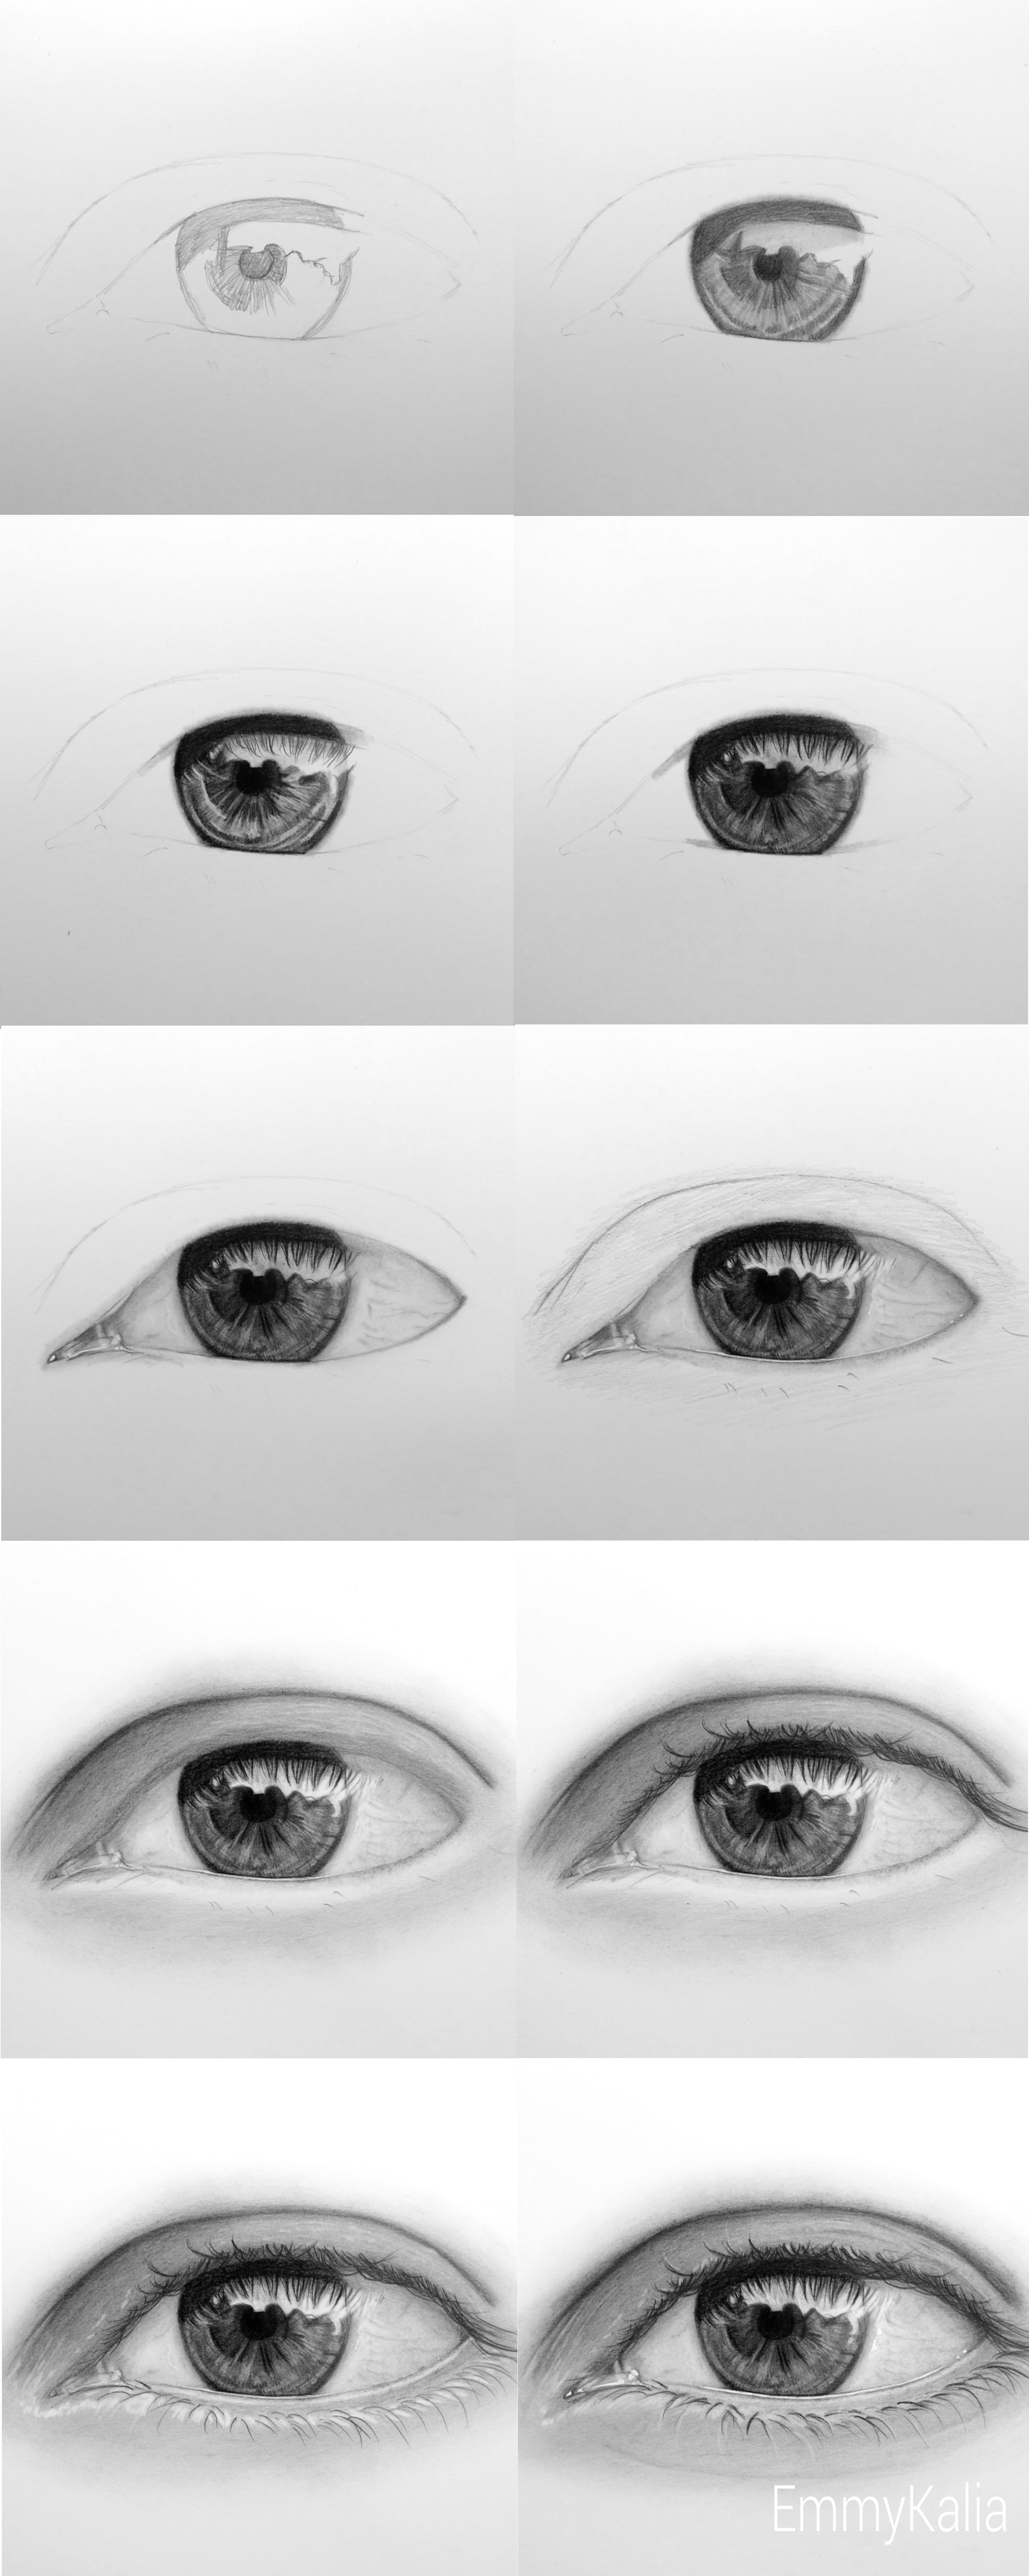 How to draw eye step by step